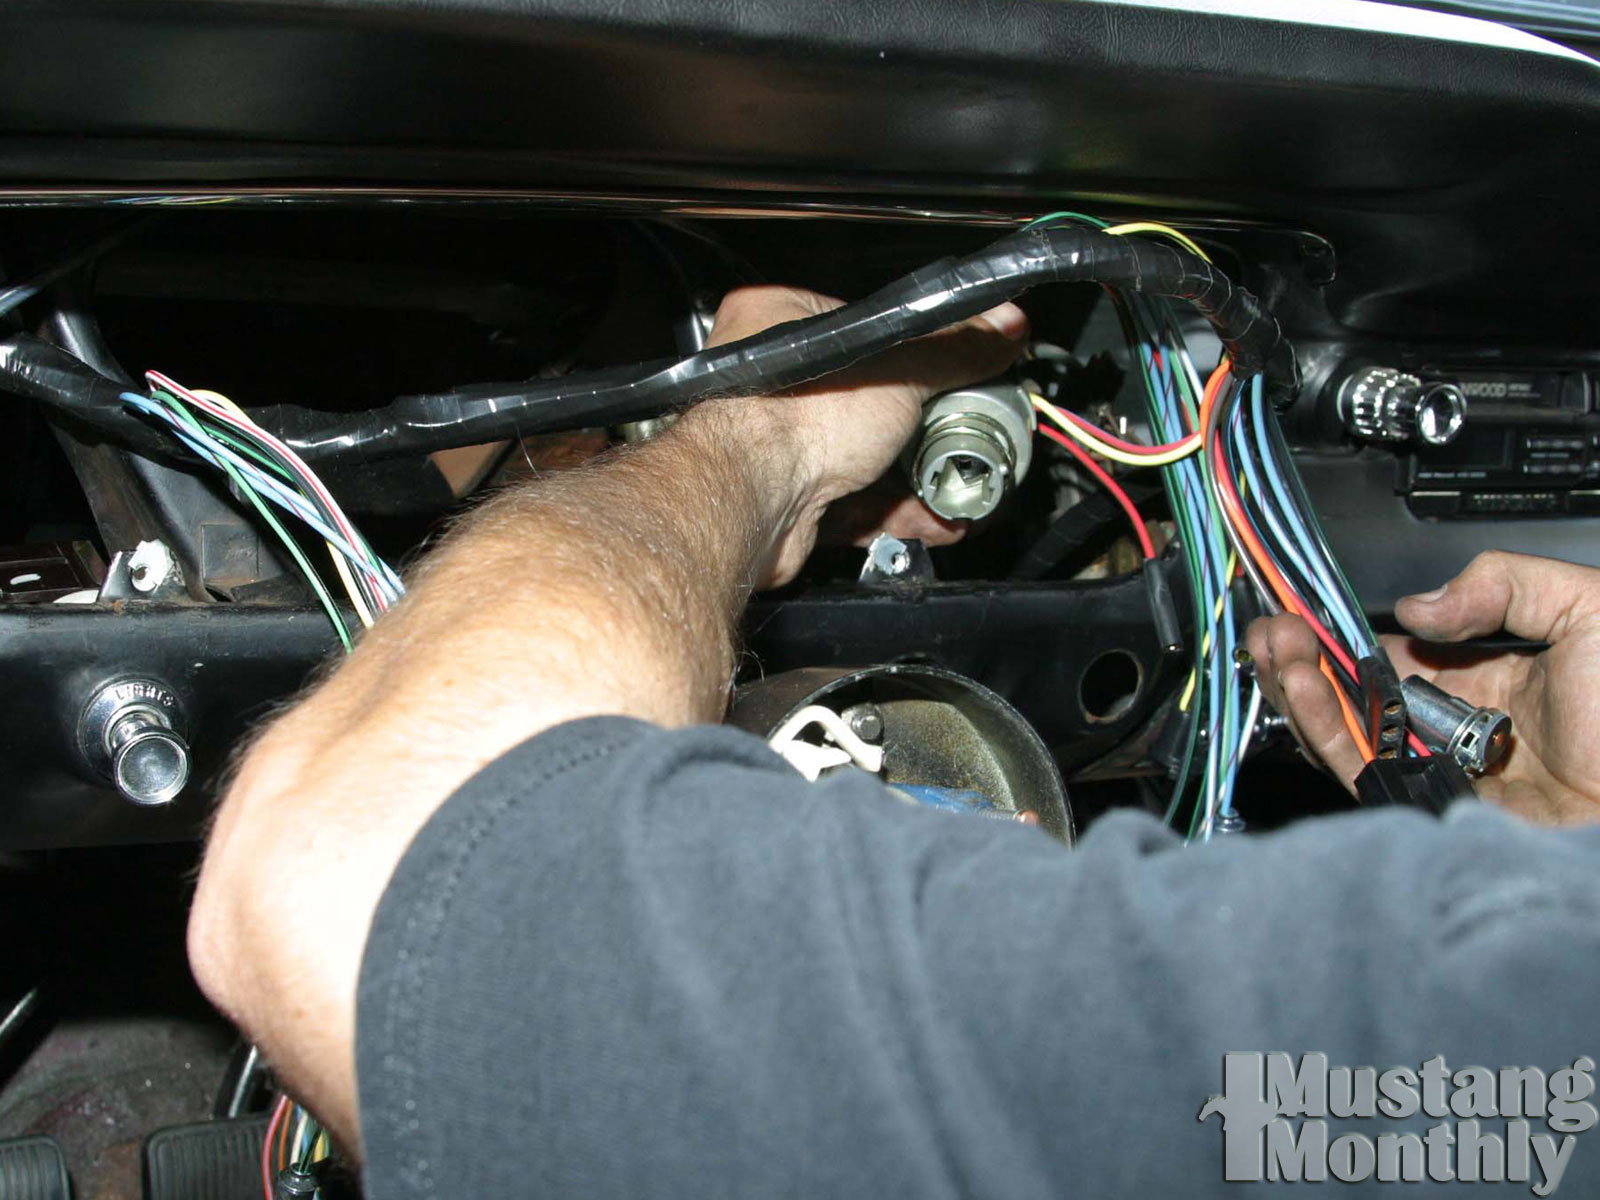 hight resolution of how to install a new wiring harness for your ford mustang mustanghow to install a new